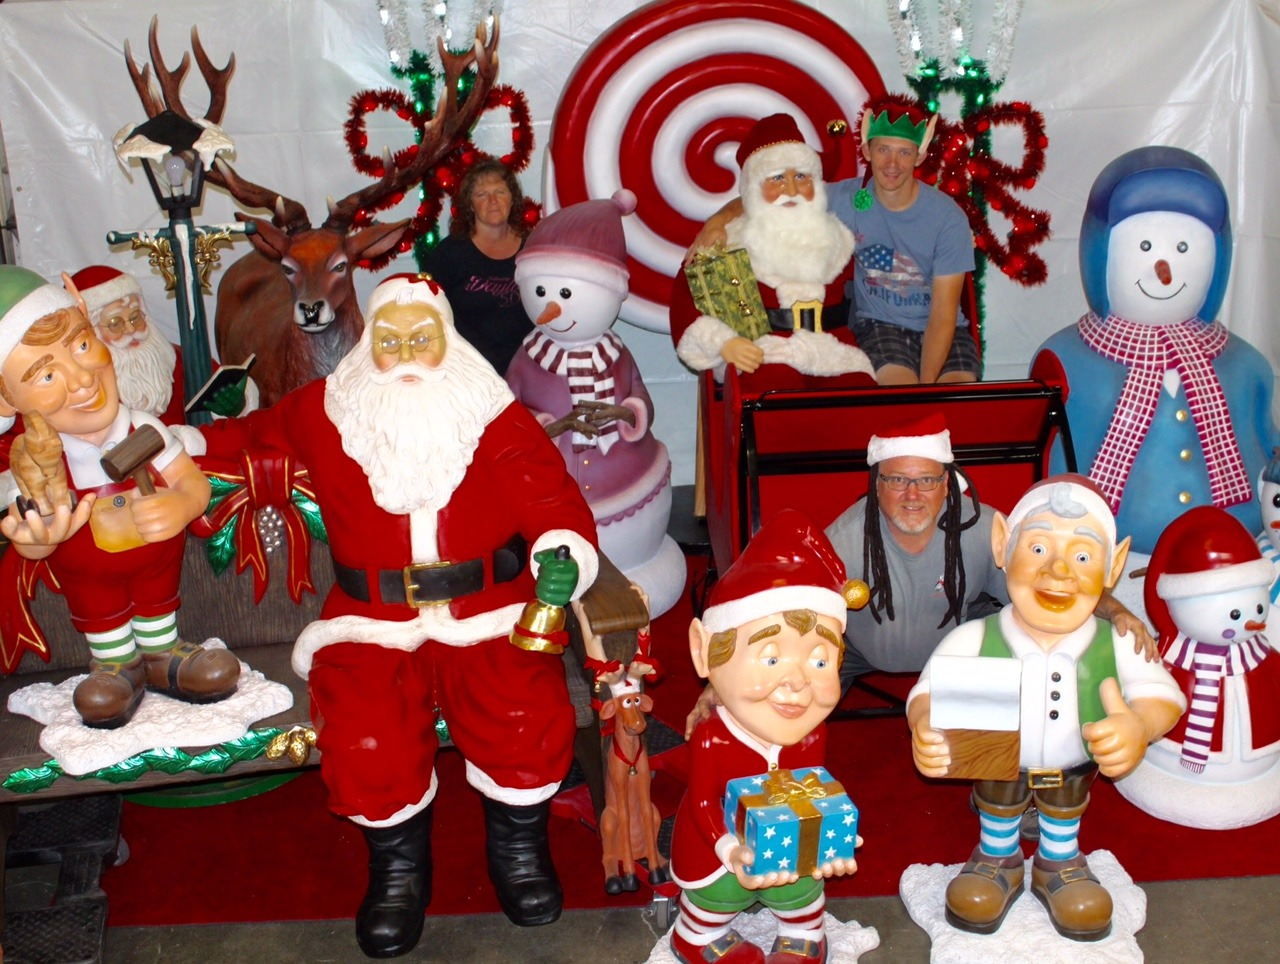 Christmas Holiday Props rental San Francisco Bay Area California